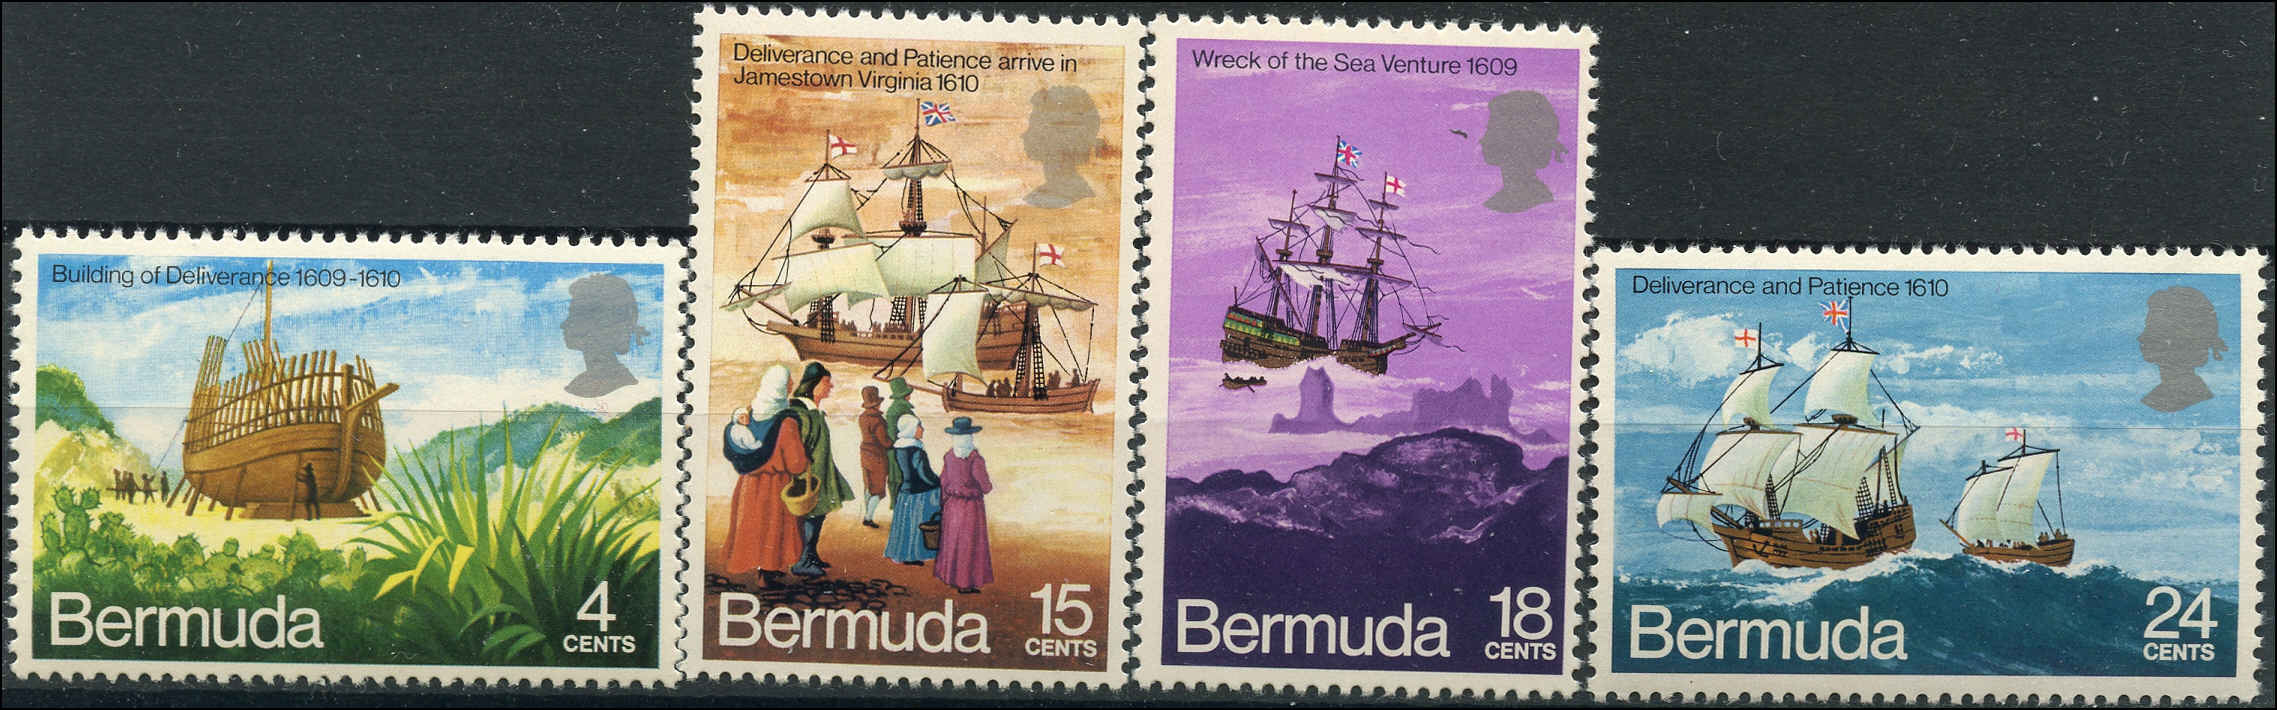 Bermuda Stamp, Scott #280-83, F+, MNH